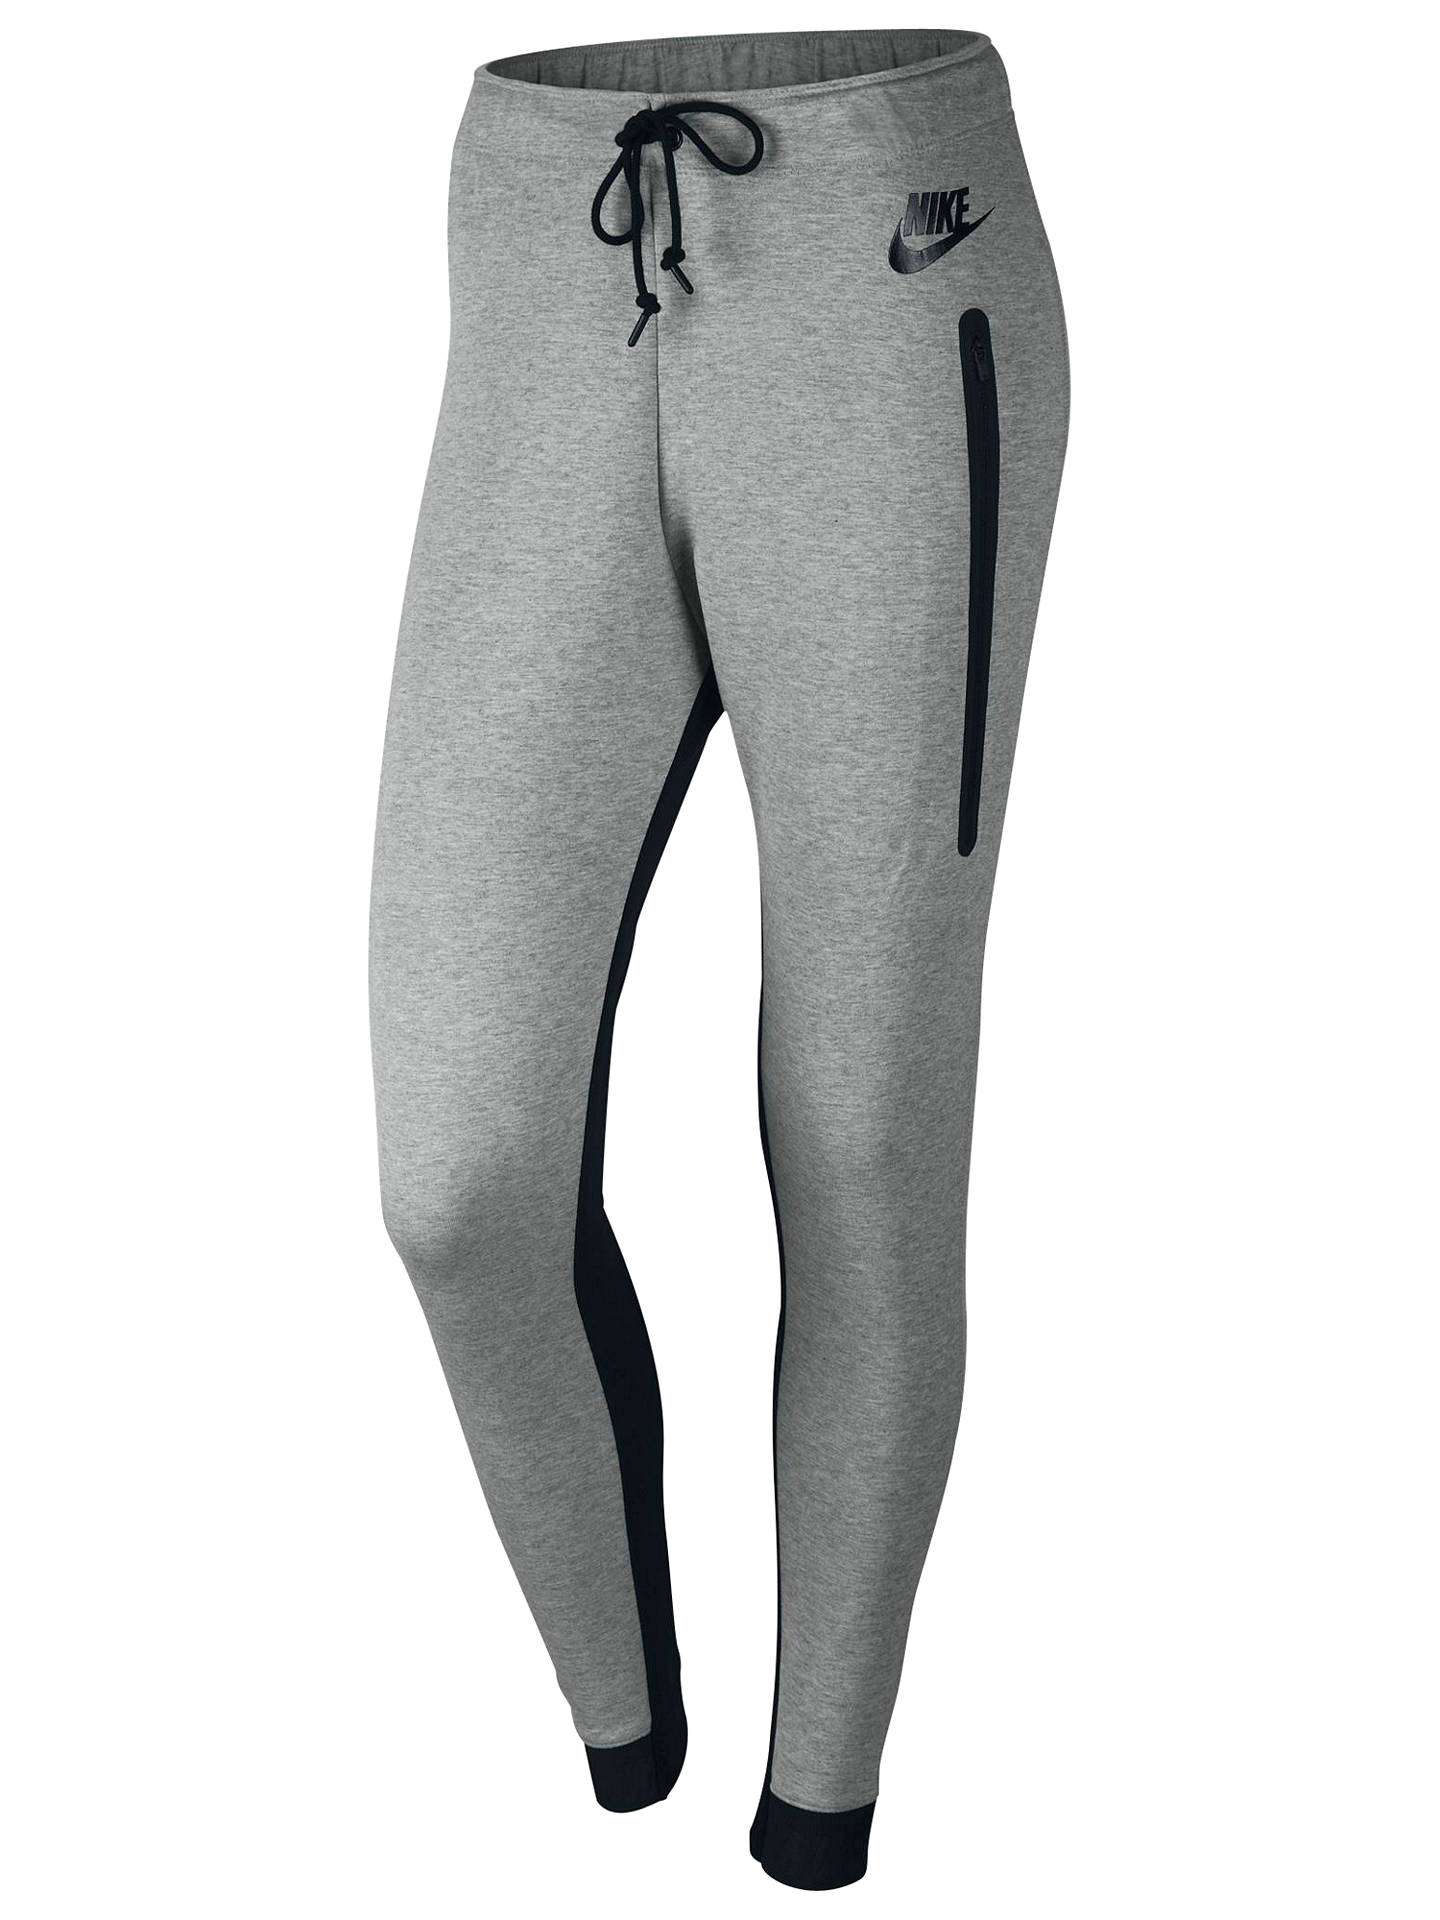 Nike Women S Tech Fleece Training Trousers Grey At John Lewis Partners